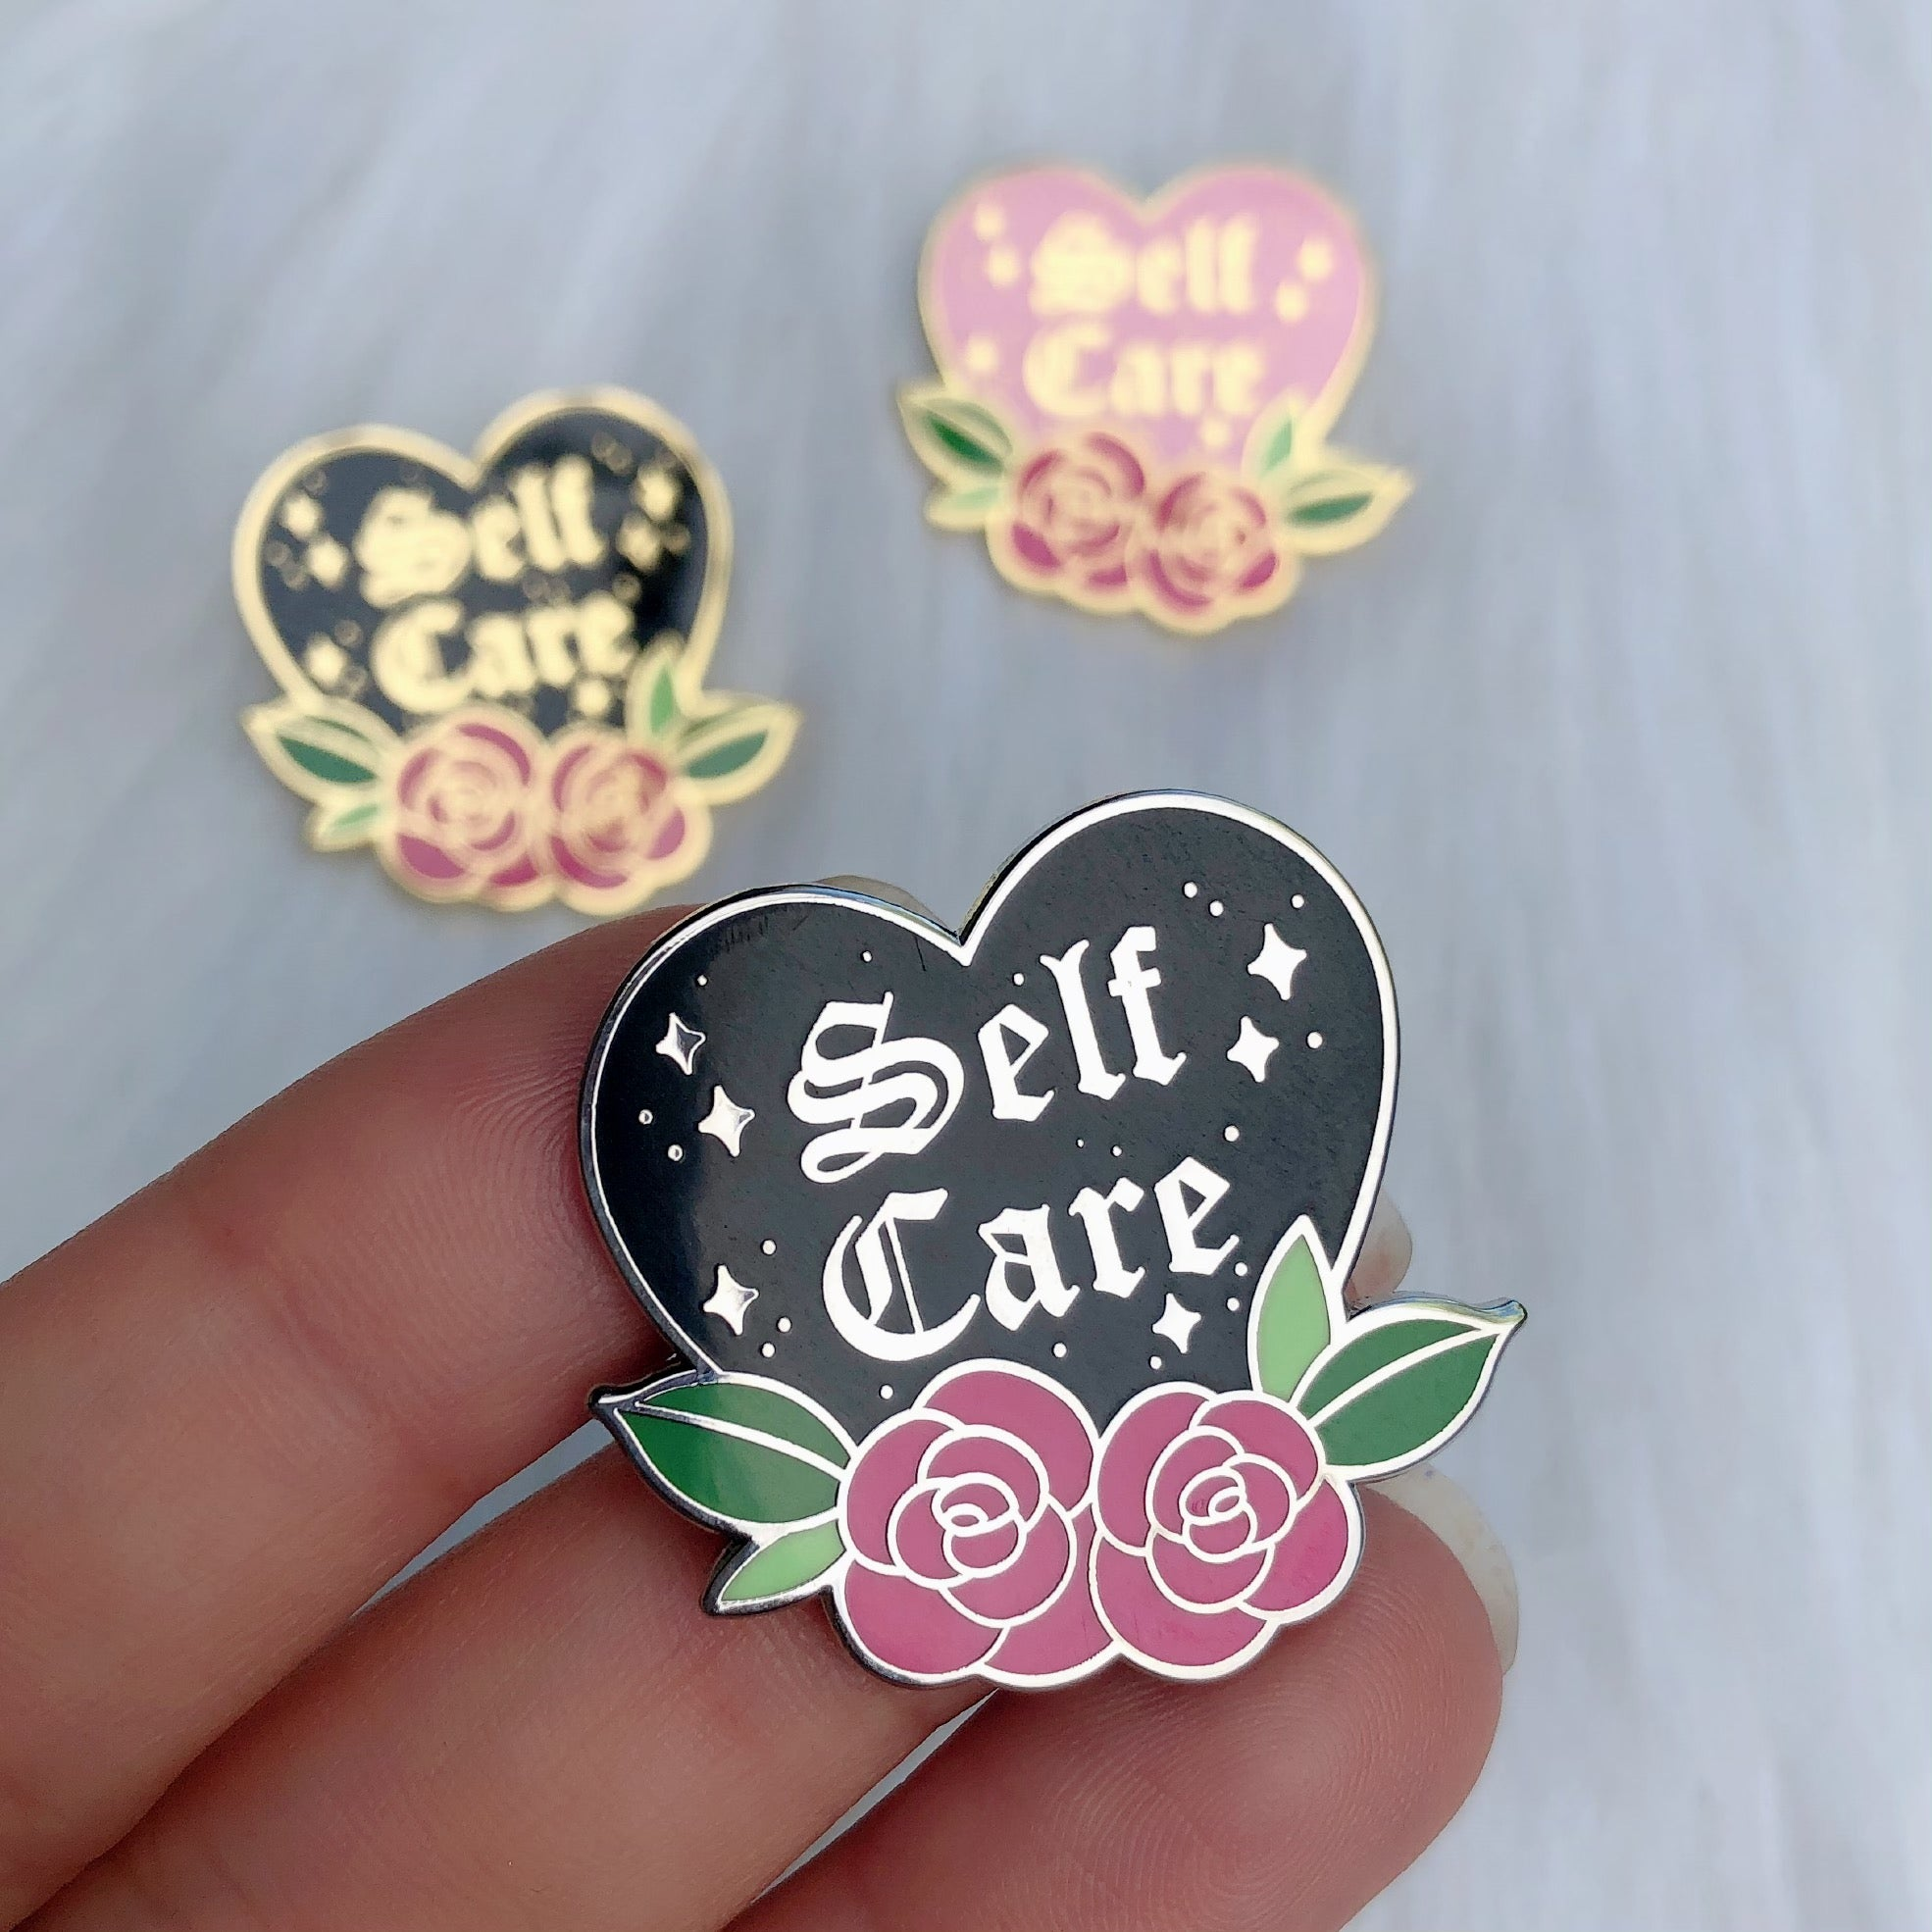 Self Care - Enamel Pin